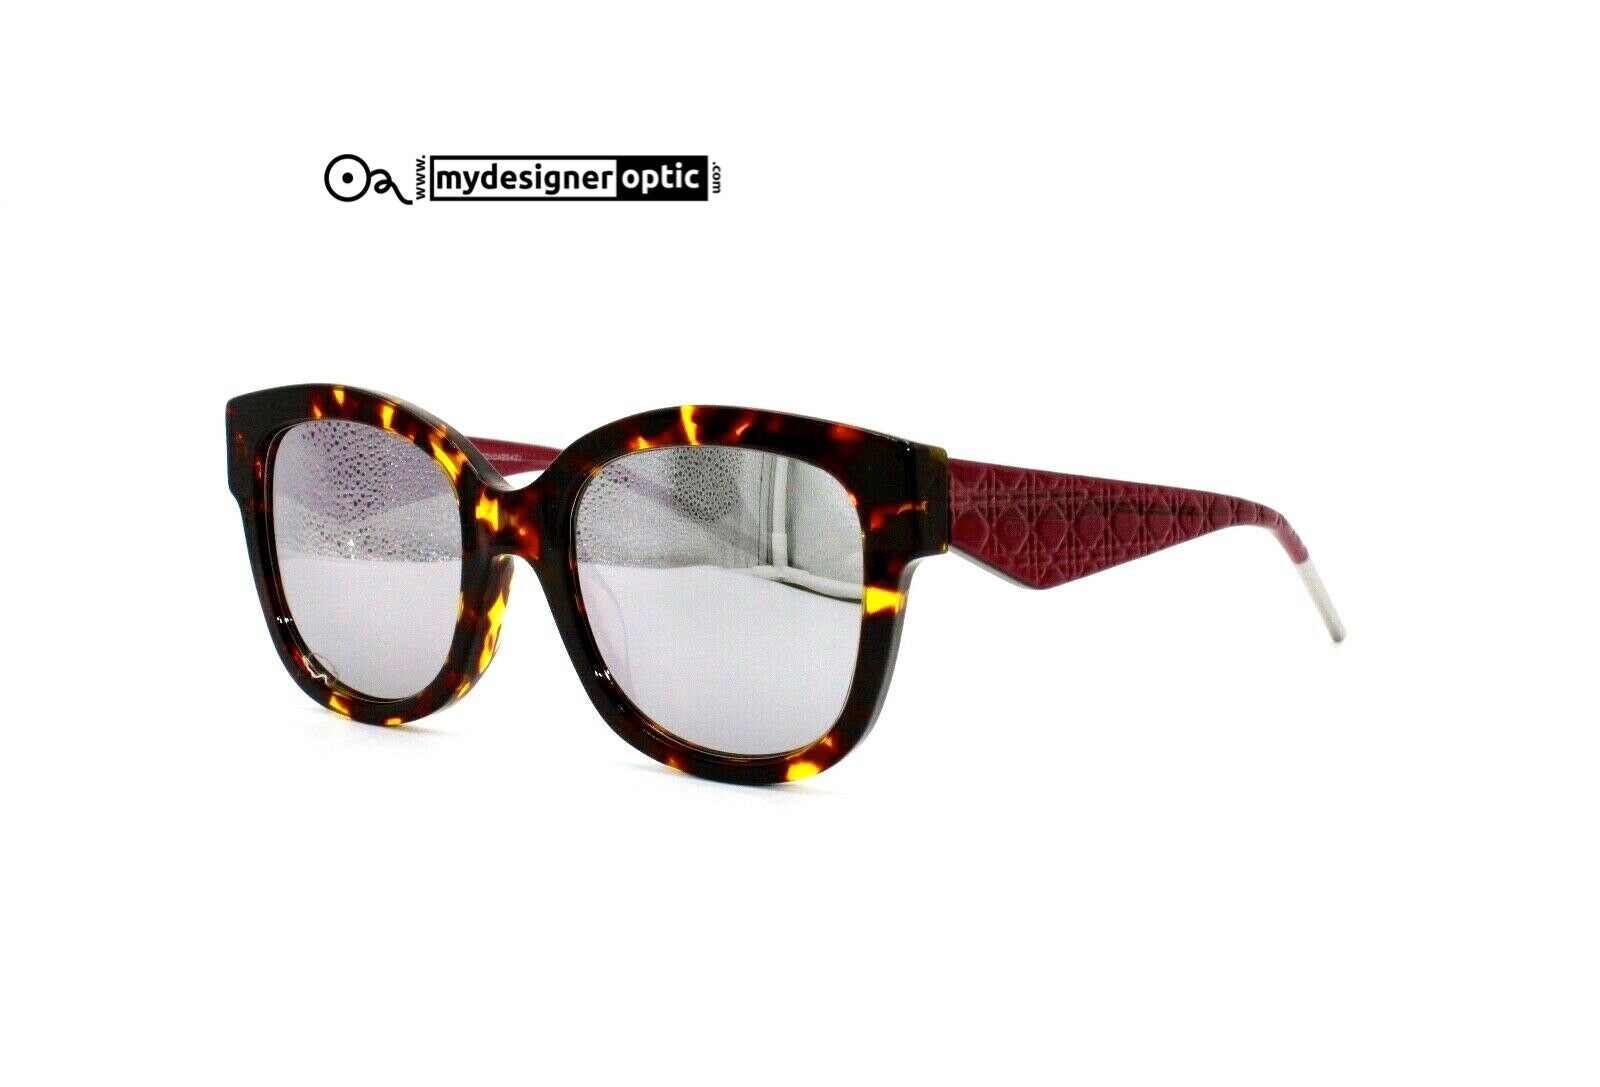 Christian Dior Sunglasses Very Dior1N Havana Red SDYO4HS4ZJ Made in Italy - Mydesigneroptic